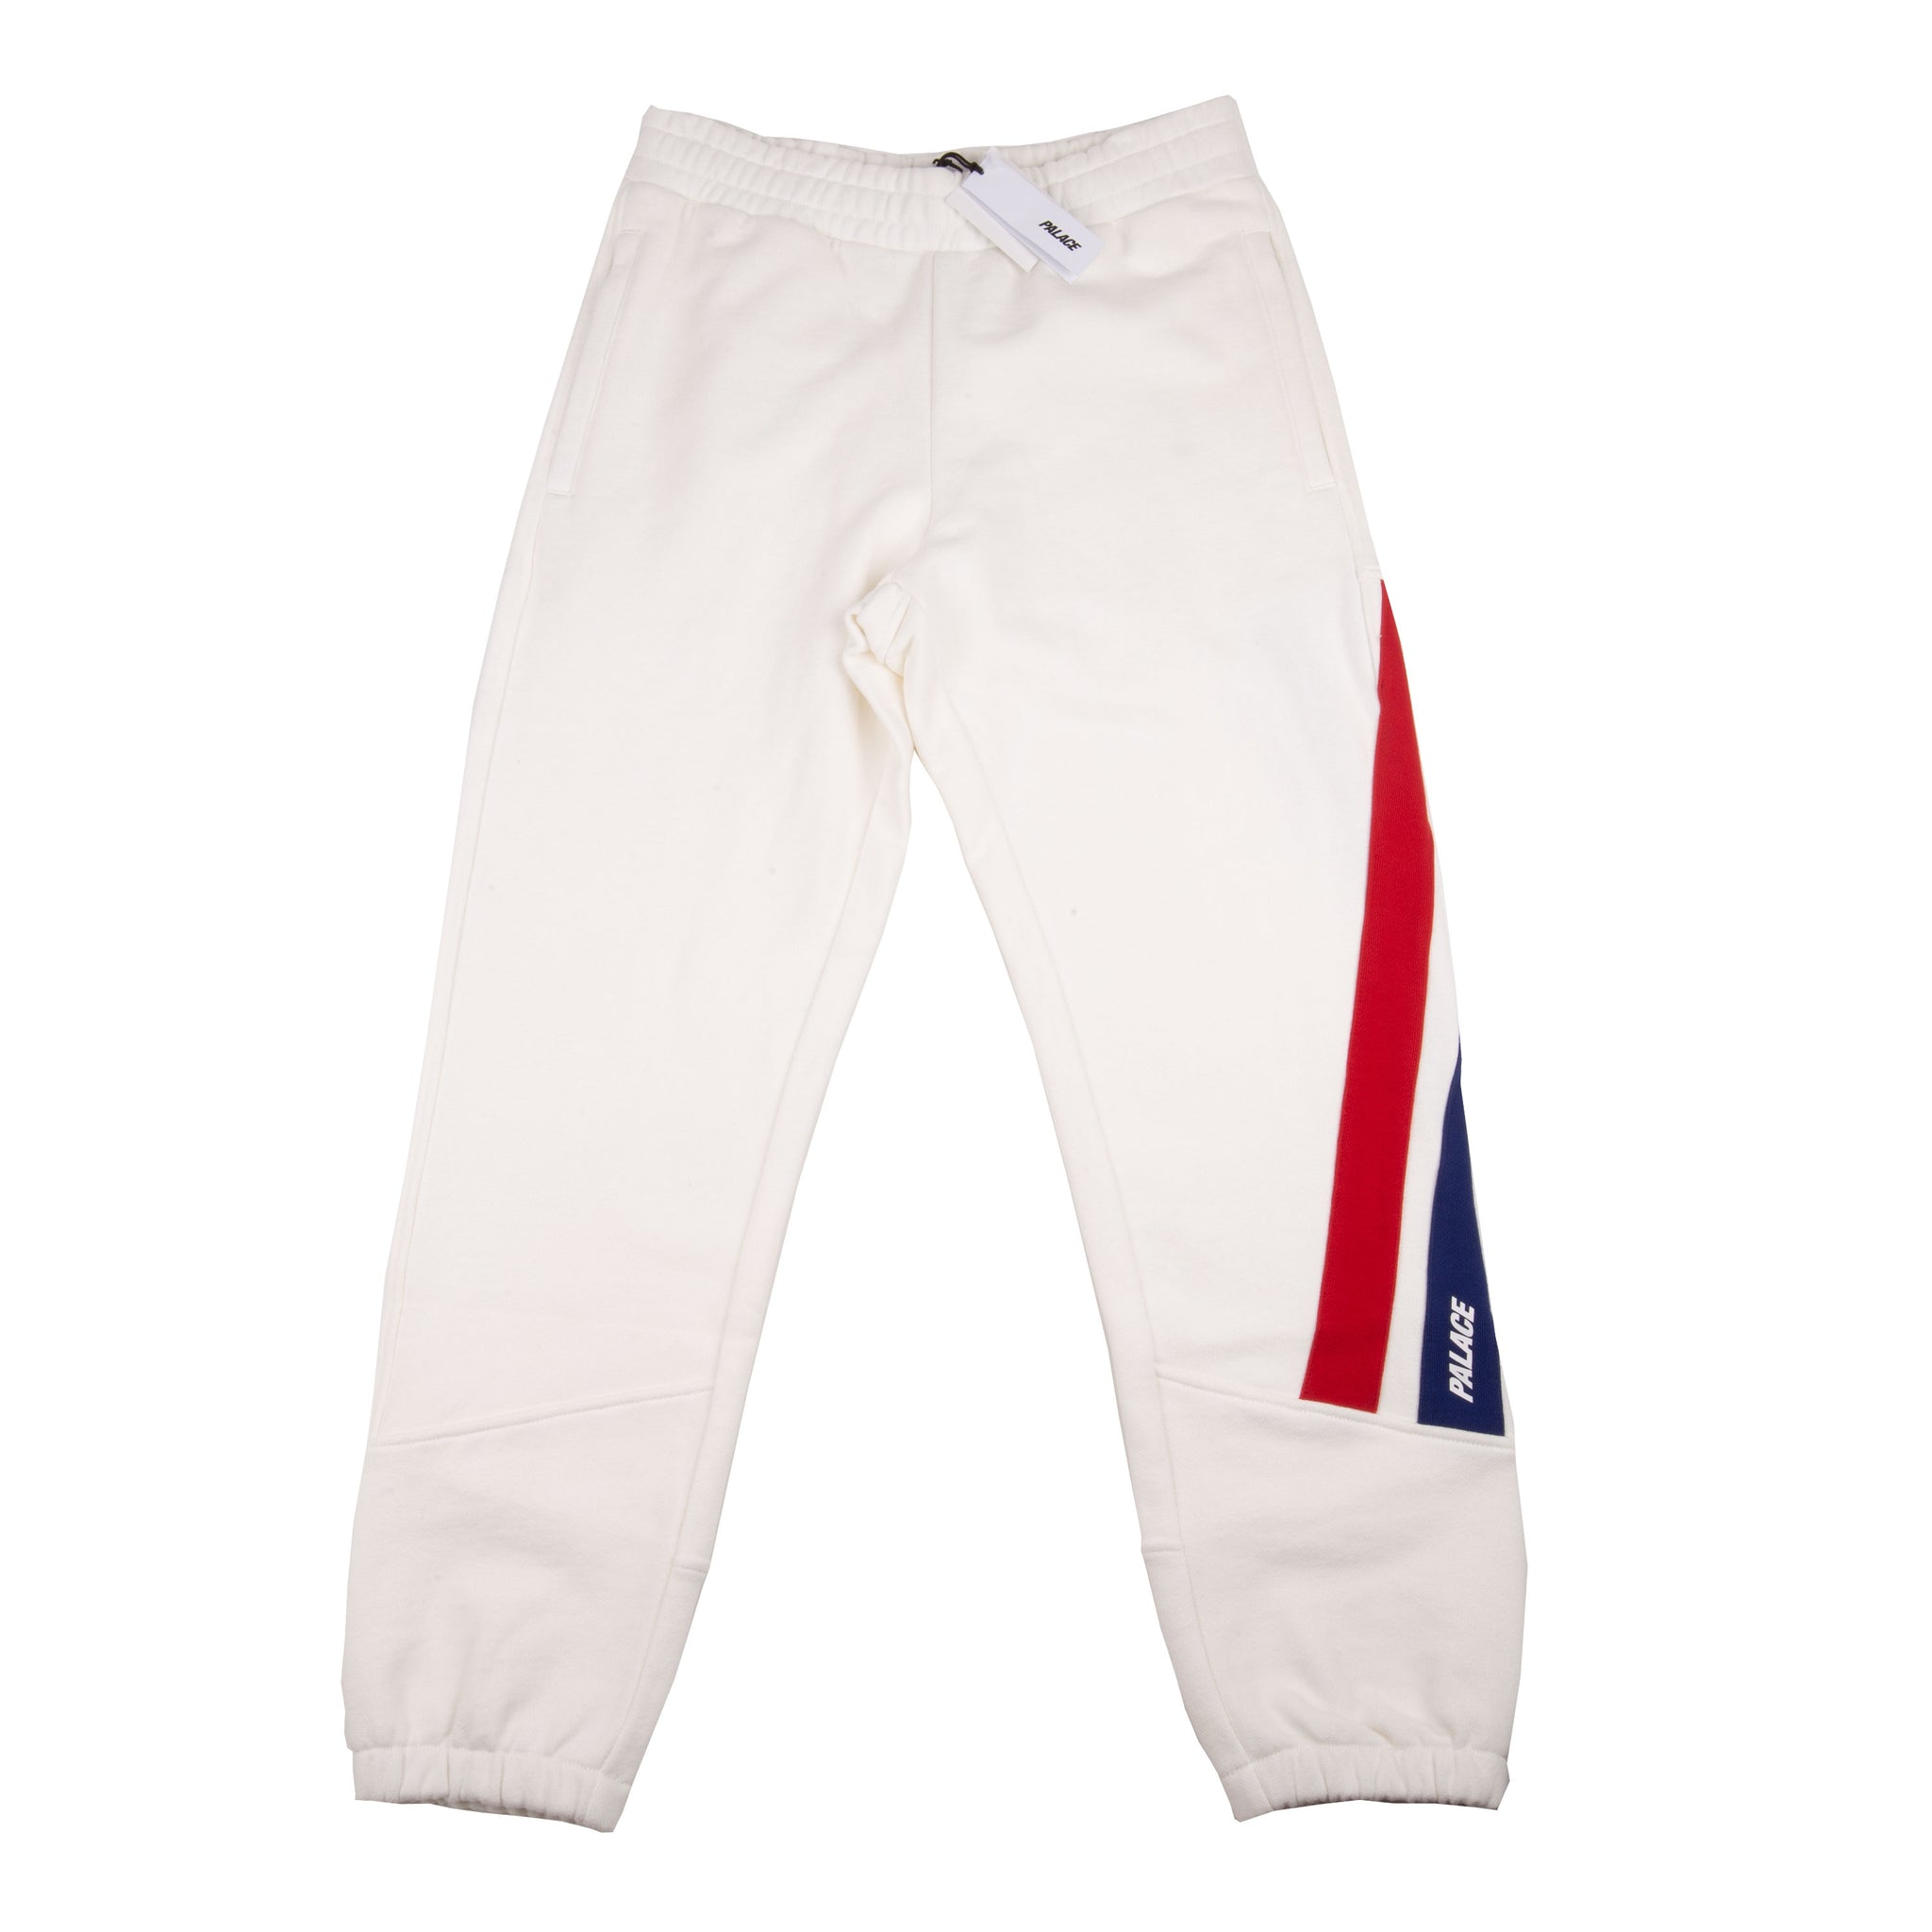 Palace White Duo Joggers